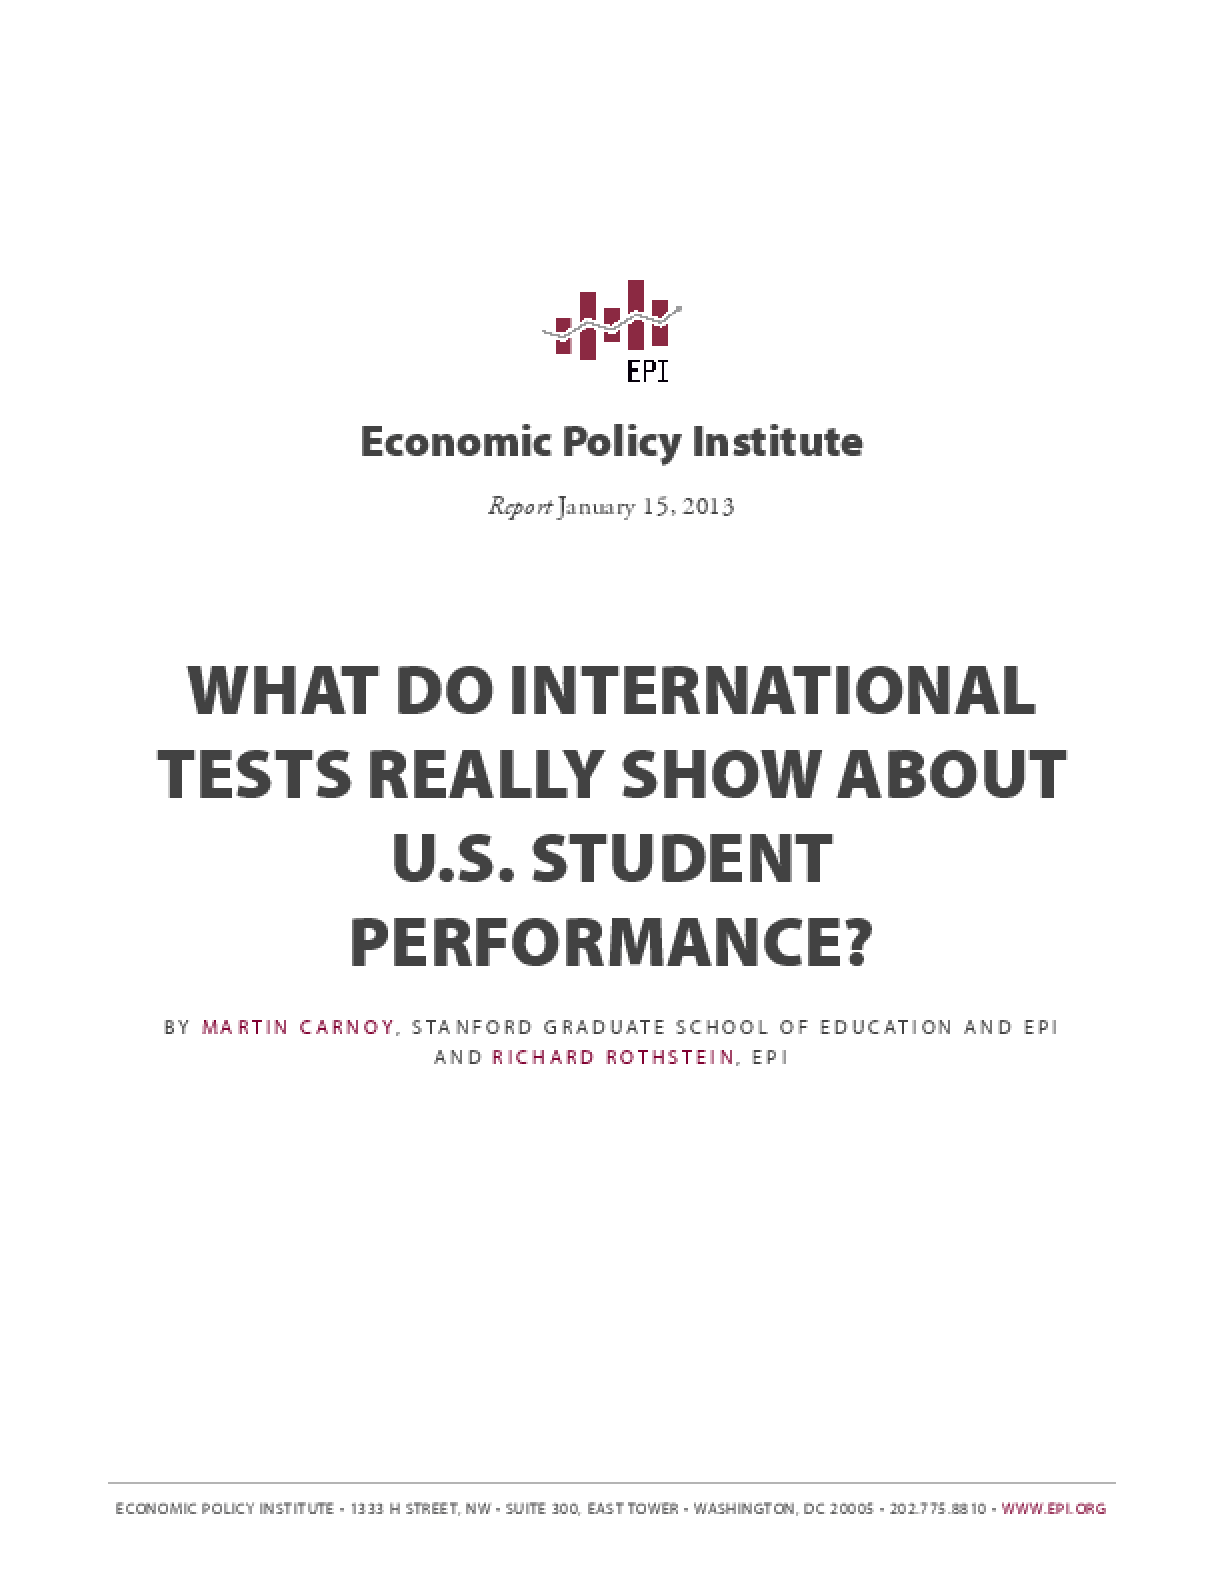 What Do International Tests Really Show About U.S. Student Performance?